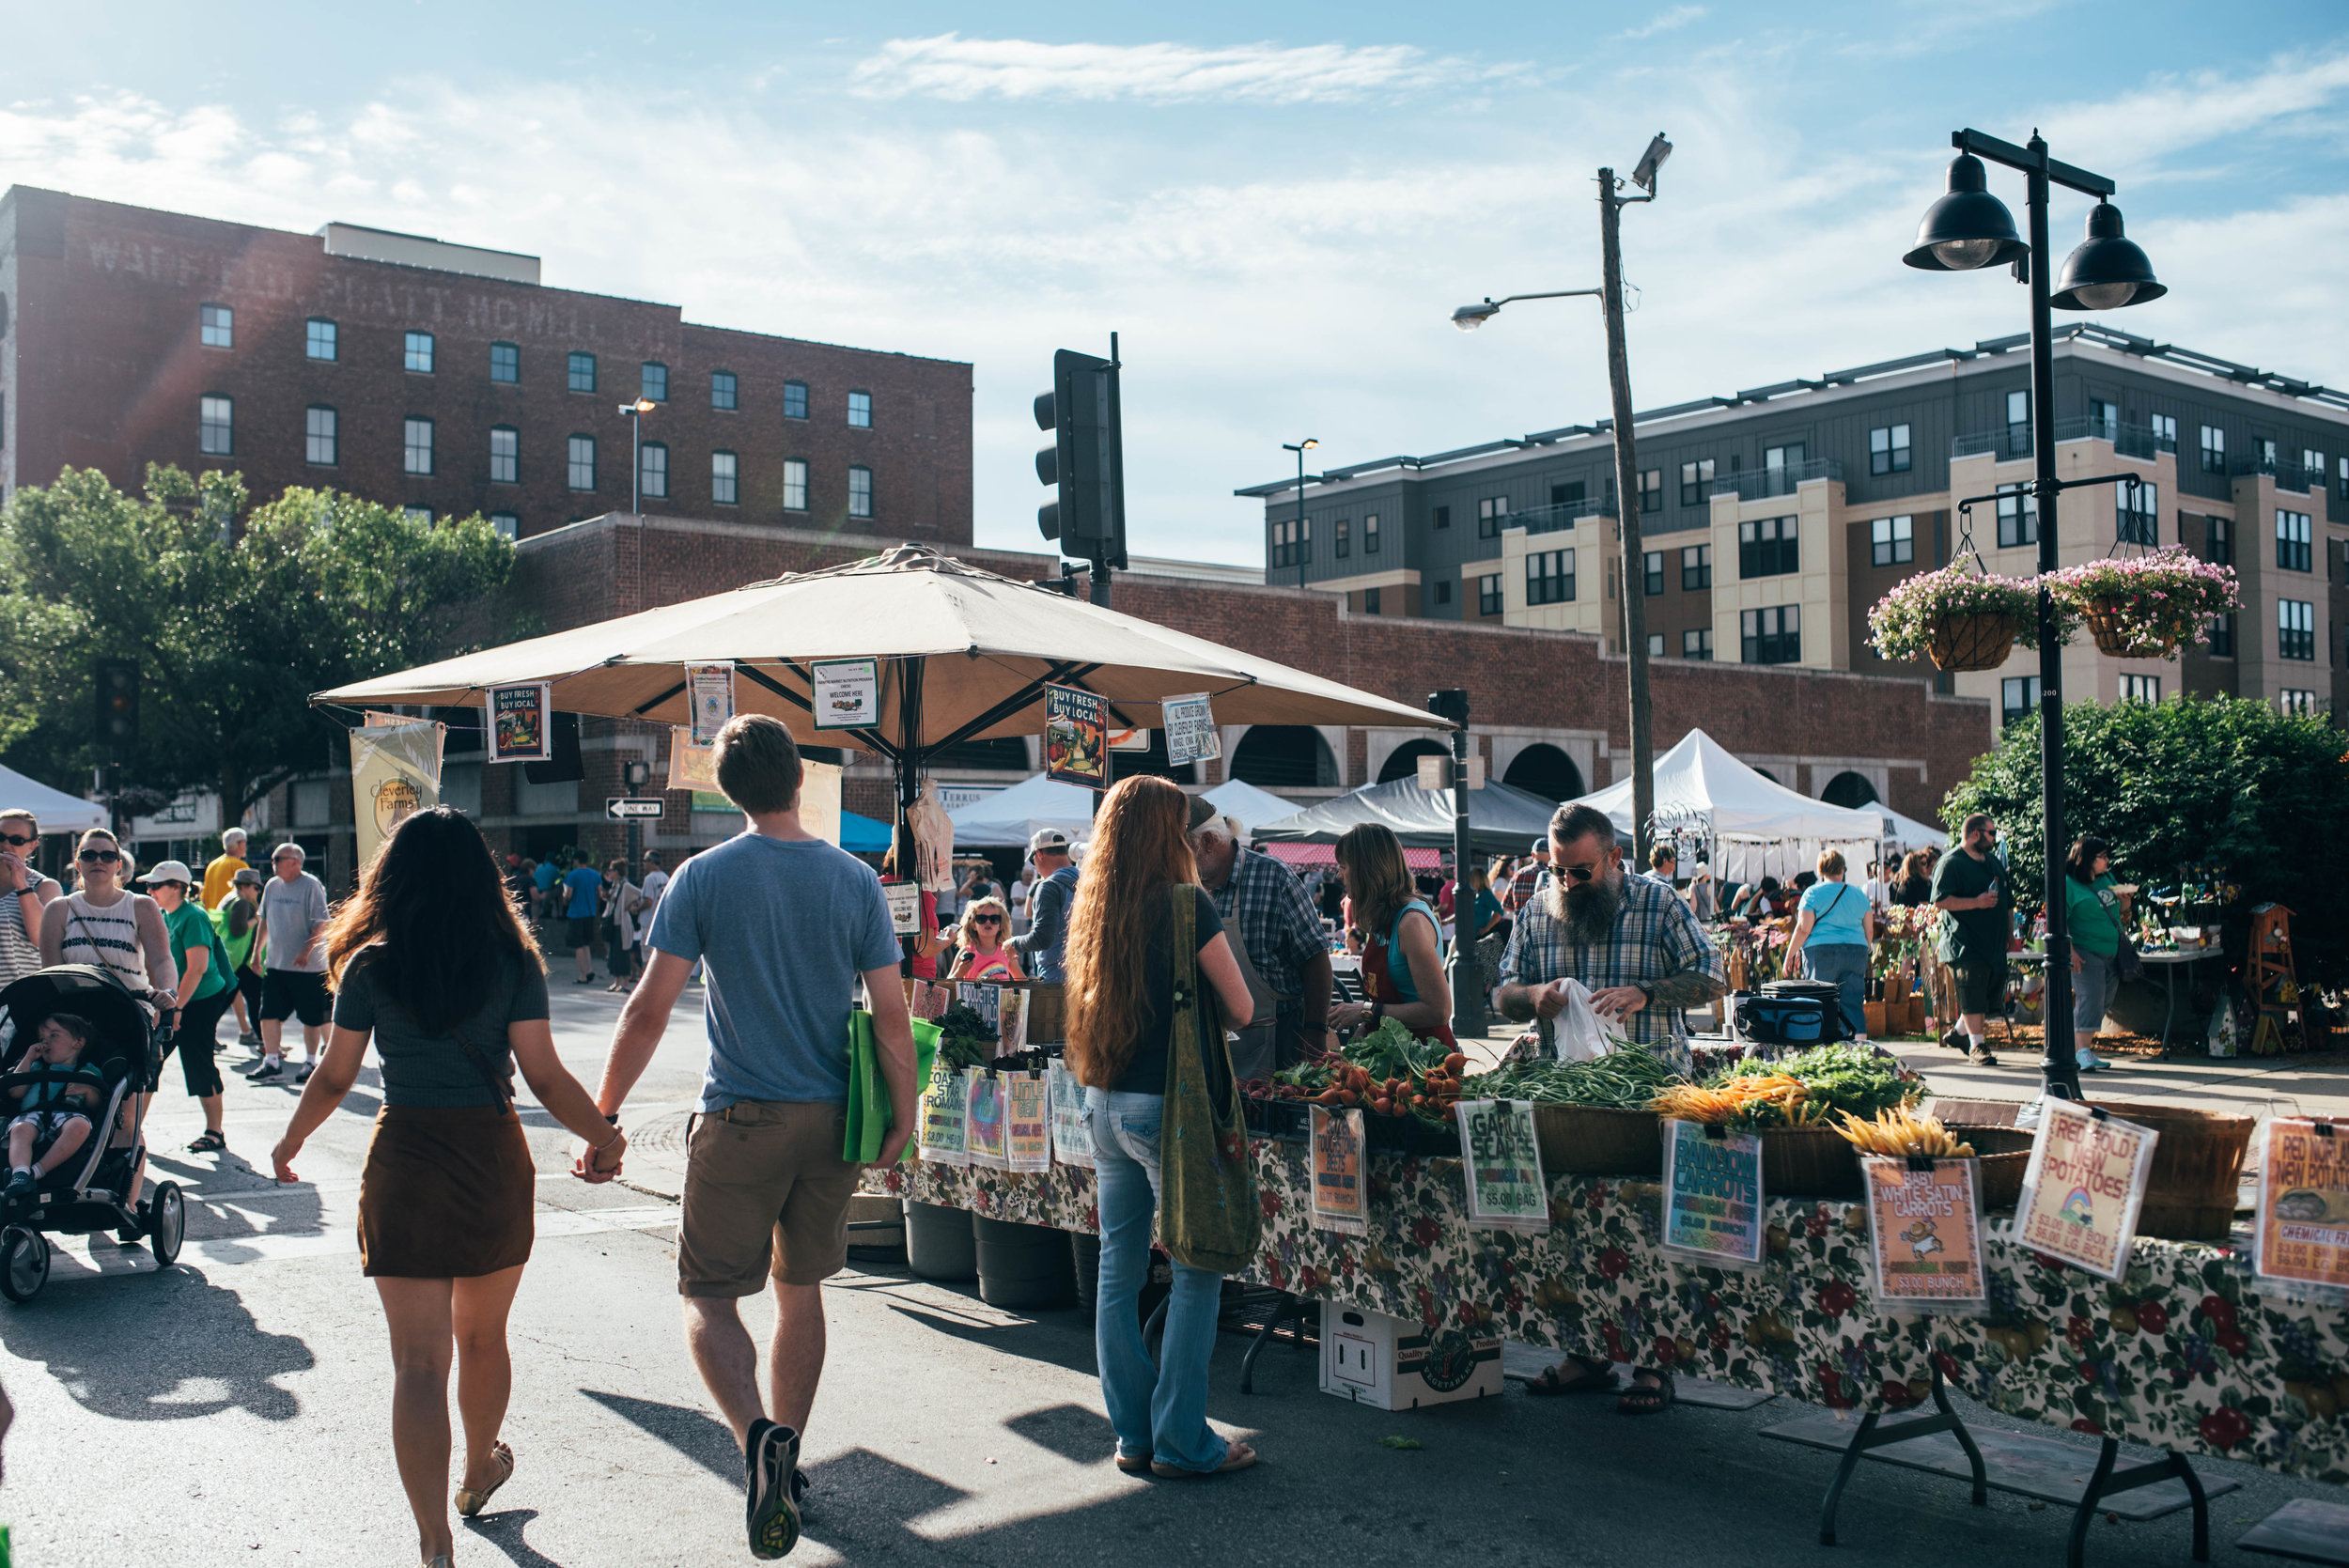 Today I want to share one of my favorite things about our city - the Downtown Des Moines Farmers' Market! - all photography by Liz Brown